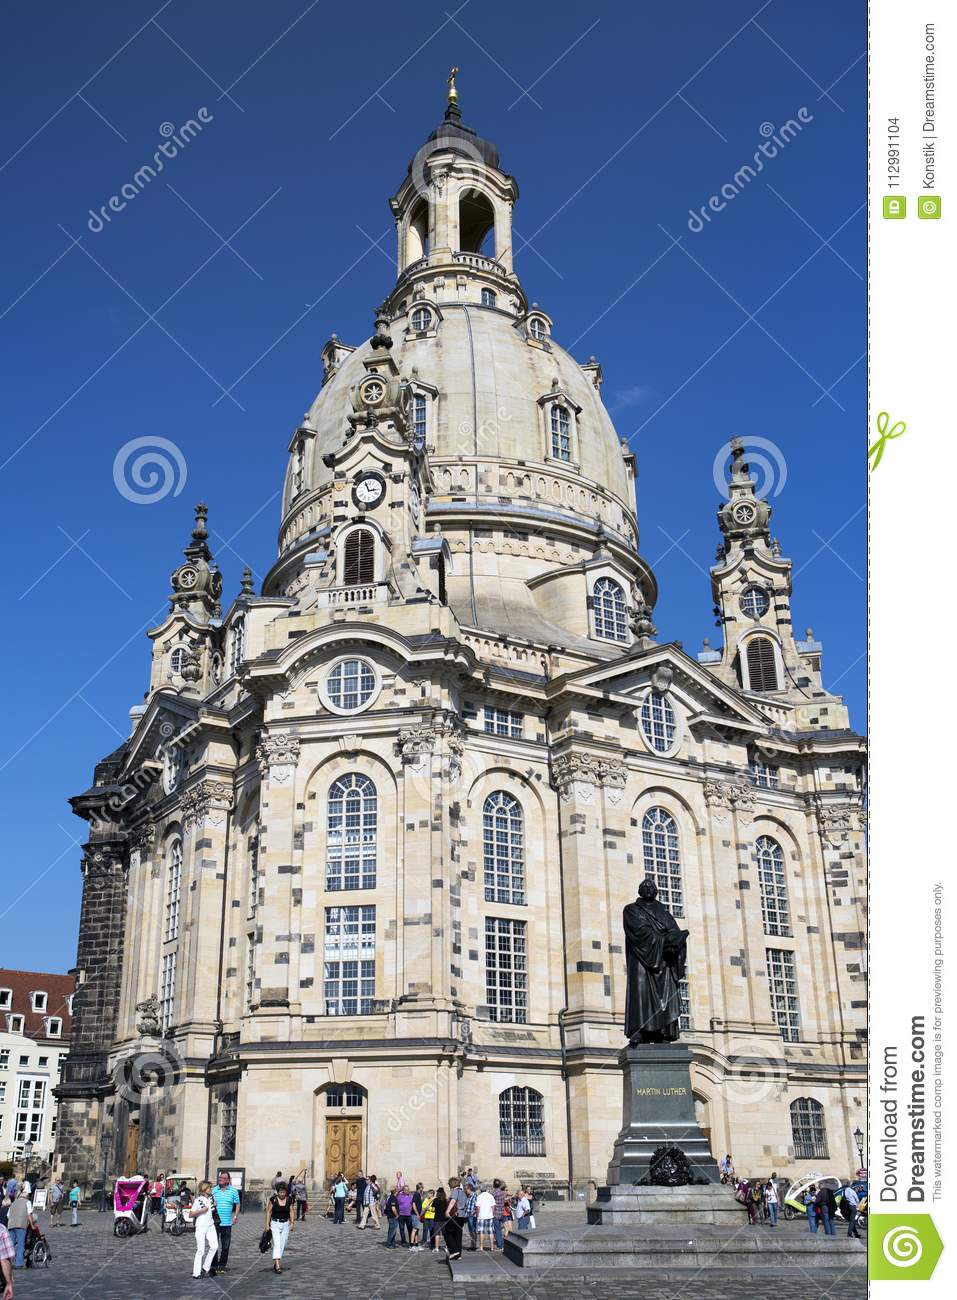 DRESDEN, GERMANY - SEPTEMBER 17, 2014: People walk in the center of Old town, near Frauenkirche Our Lady church